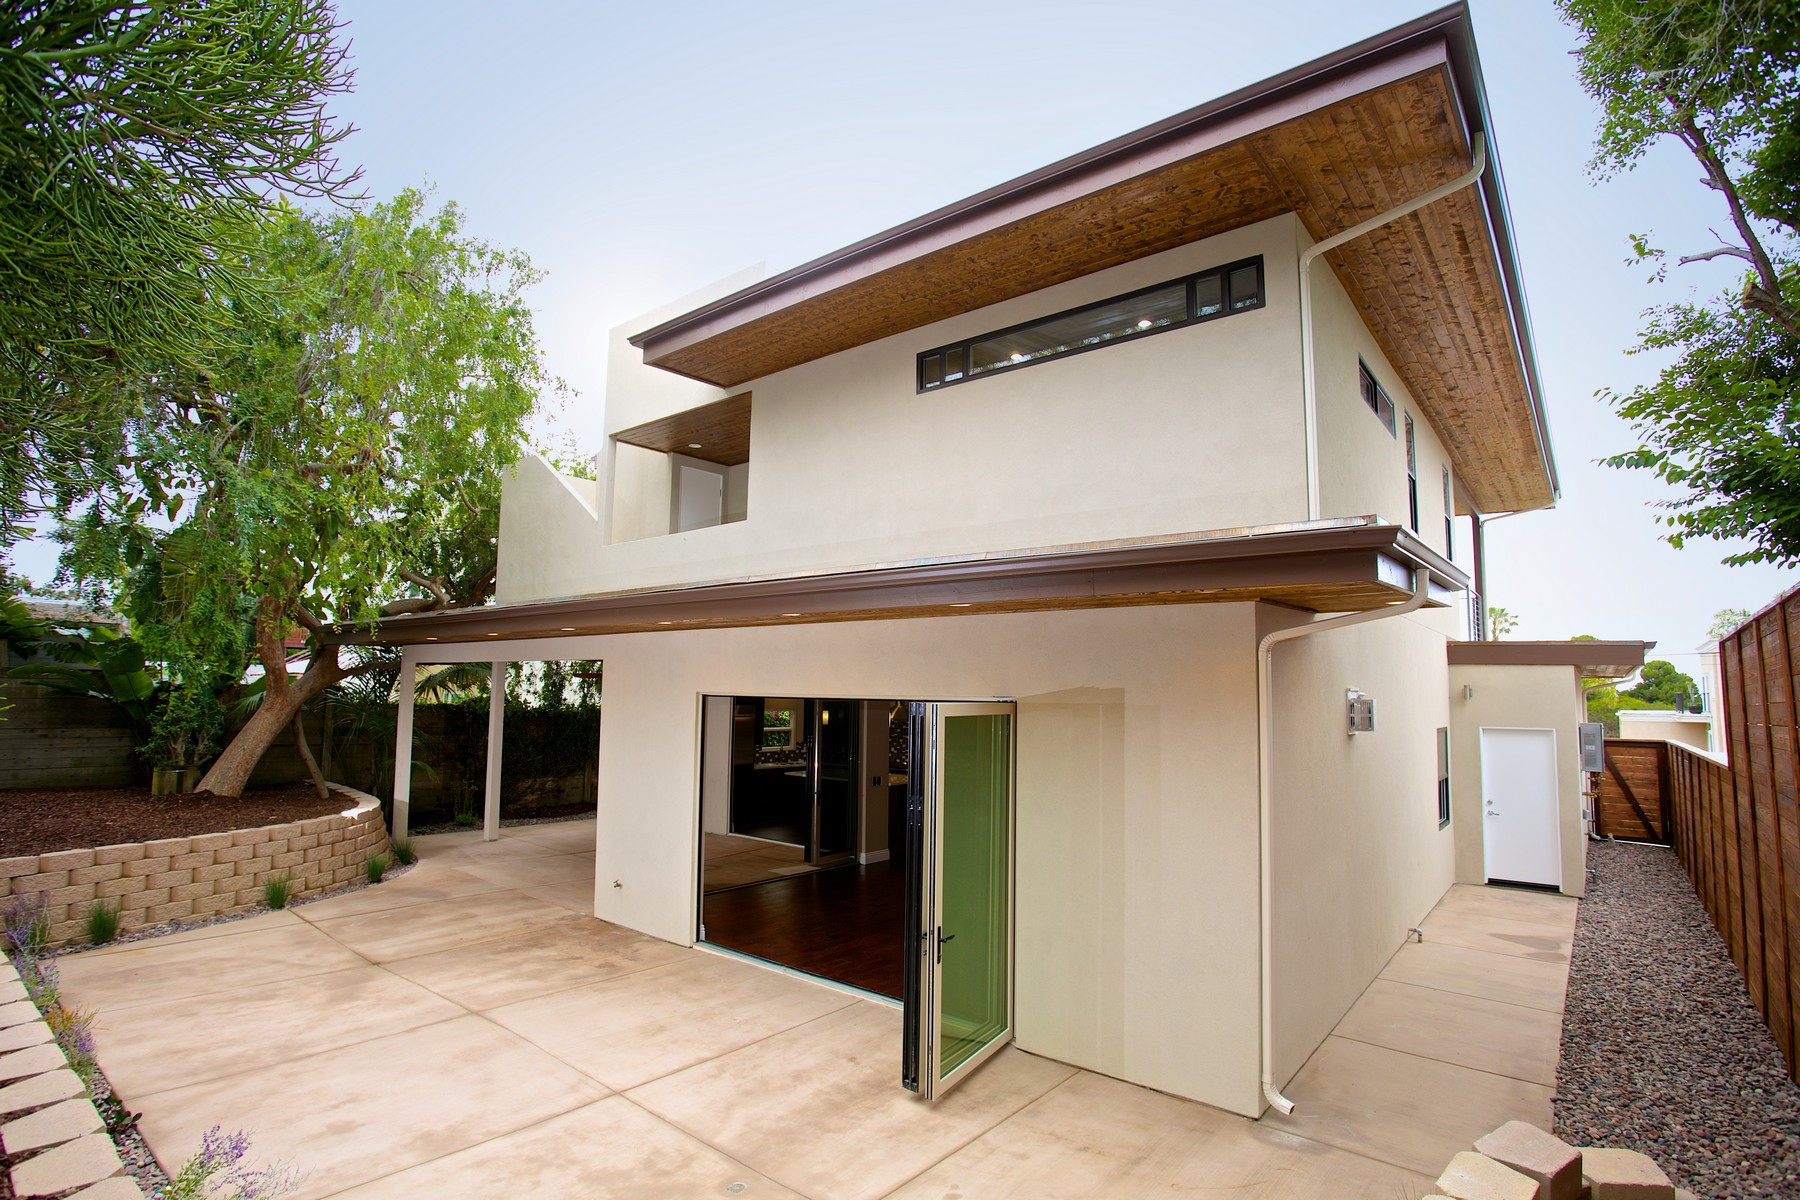 Additional photo for property listing at 9543 Poole Street  La Jolla, Калифорния 92037 Соединенные Штаты